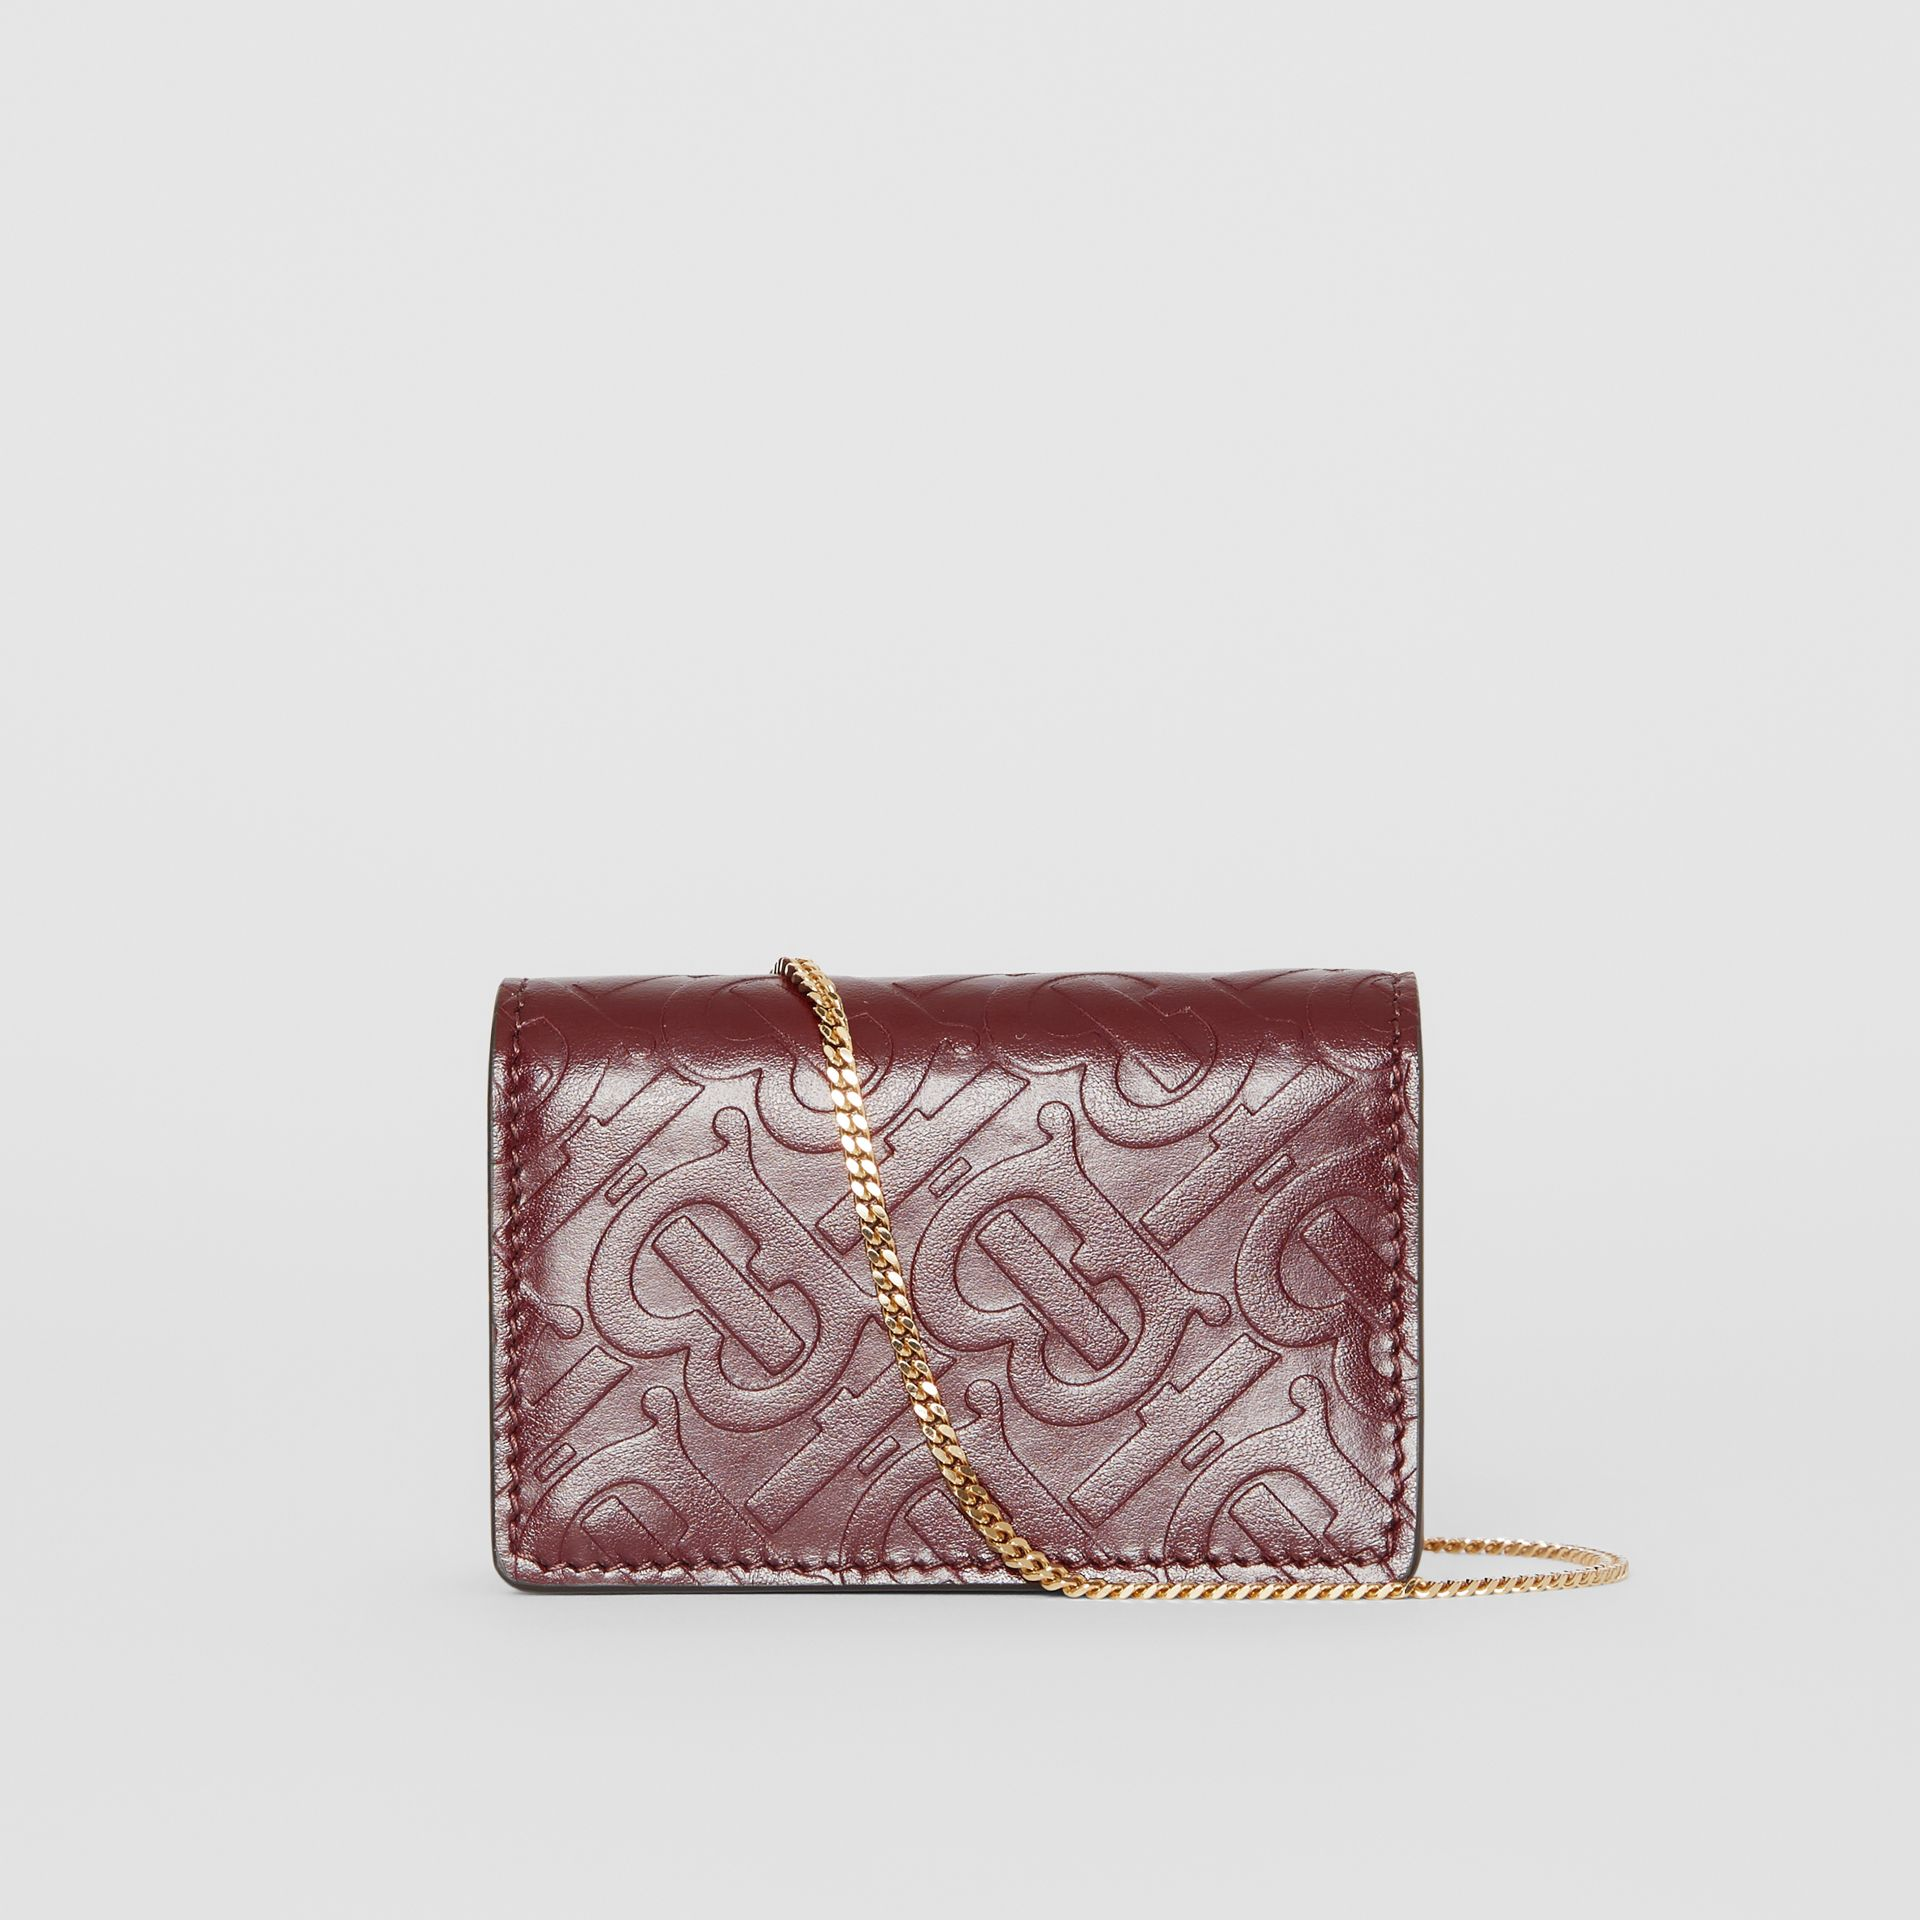 Monogram Leather Card Case with Detachable Strap in Oxblood | Burberry - gallery image 7